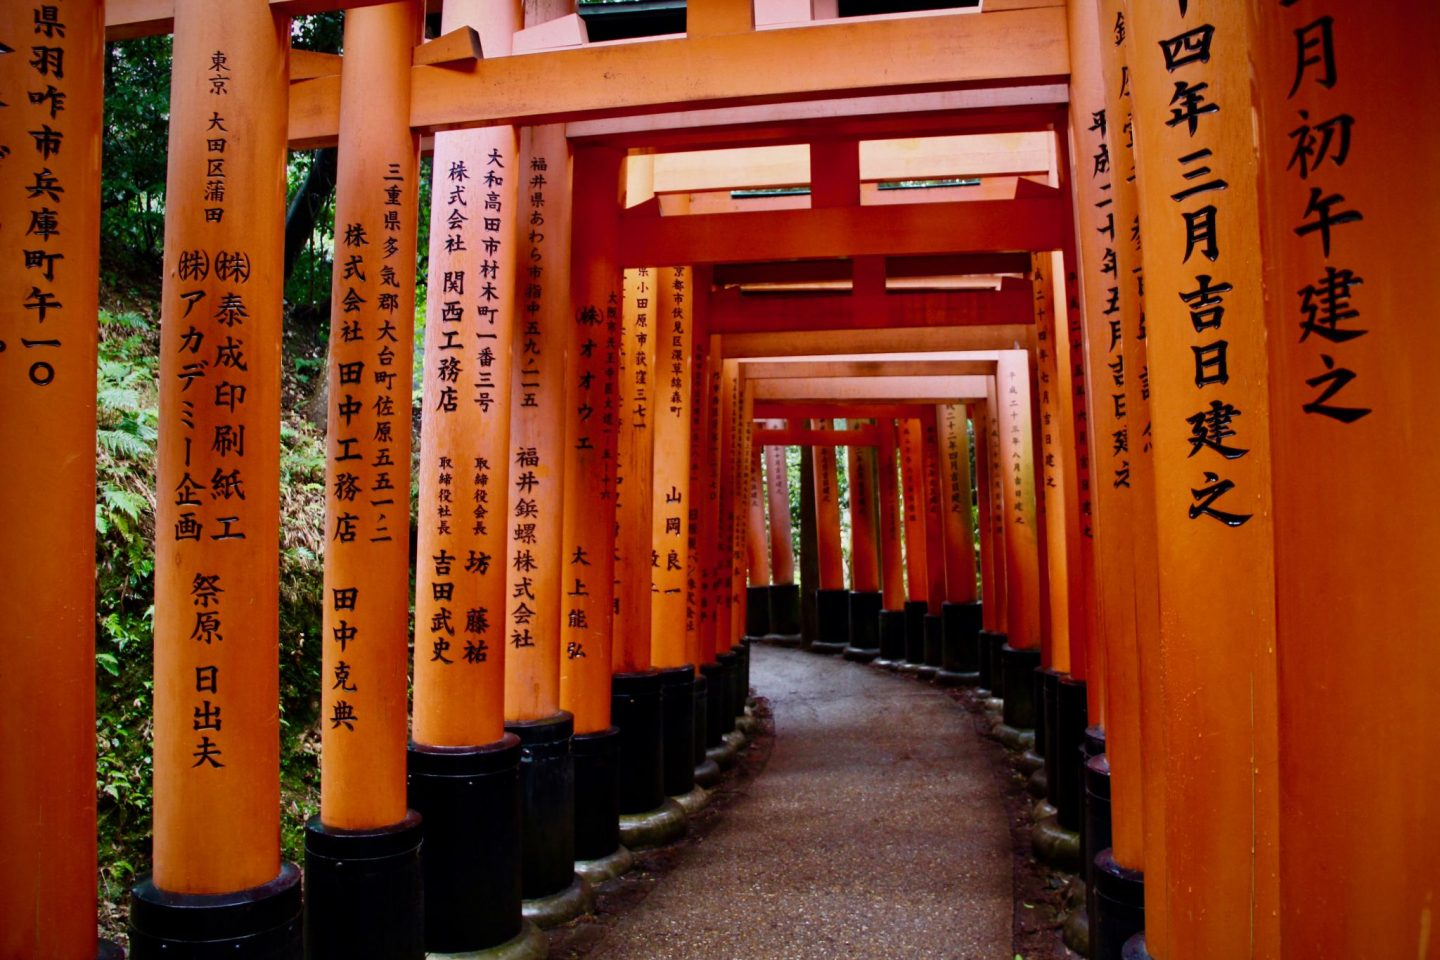 Fushimi Inari Shrine Tori Gates Kyoto, Japan - The Spectacular Adventurer